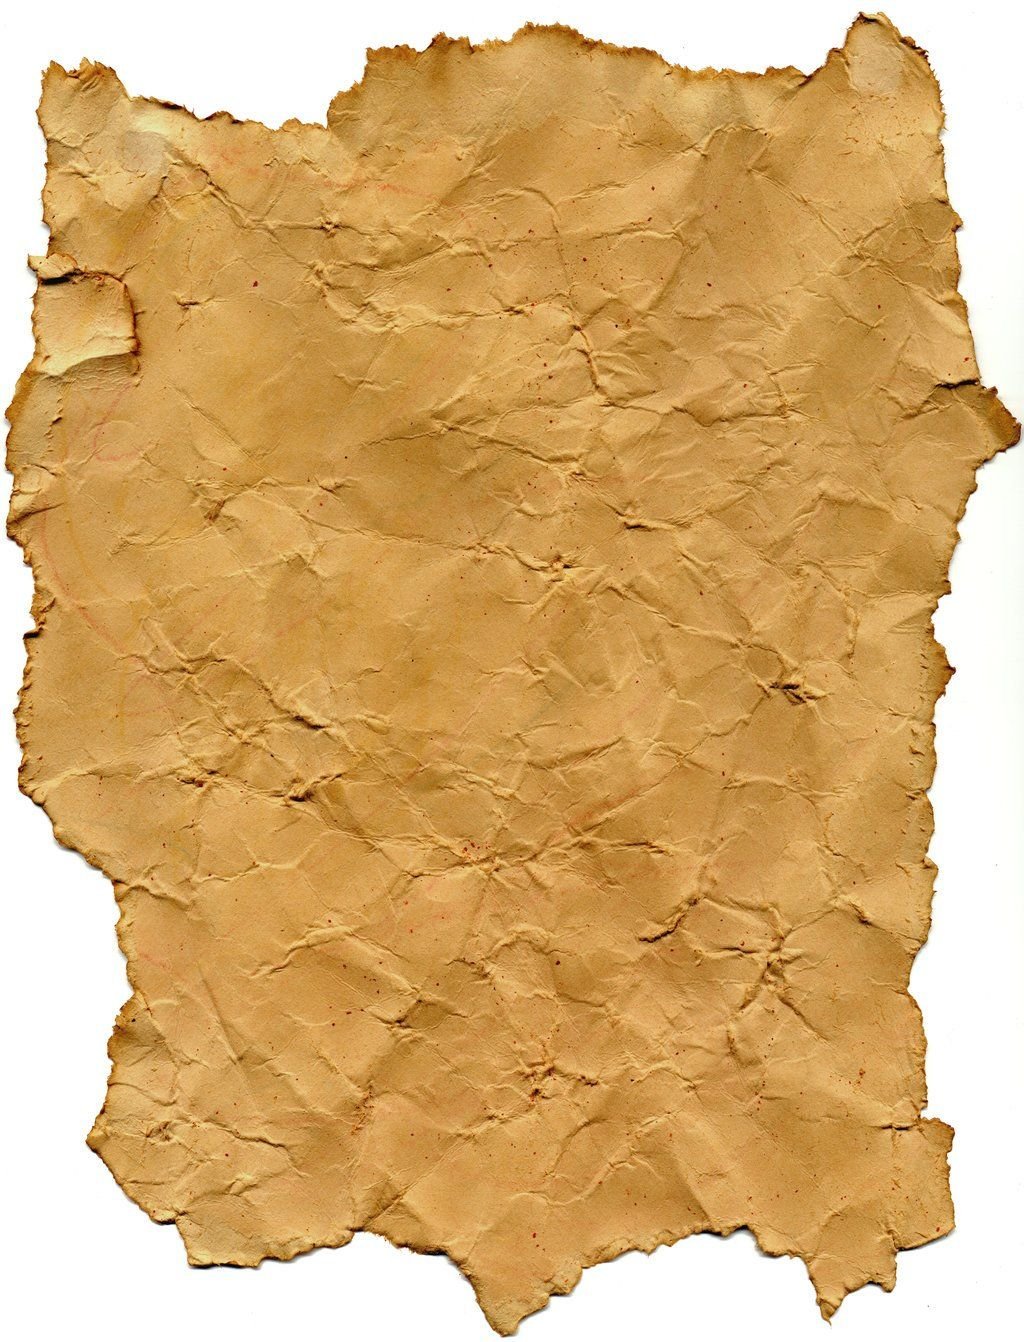 150 Old Paper Textures Backgrounds Free Download Free Paper Texture Paper Texture Brown Paper Textures